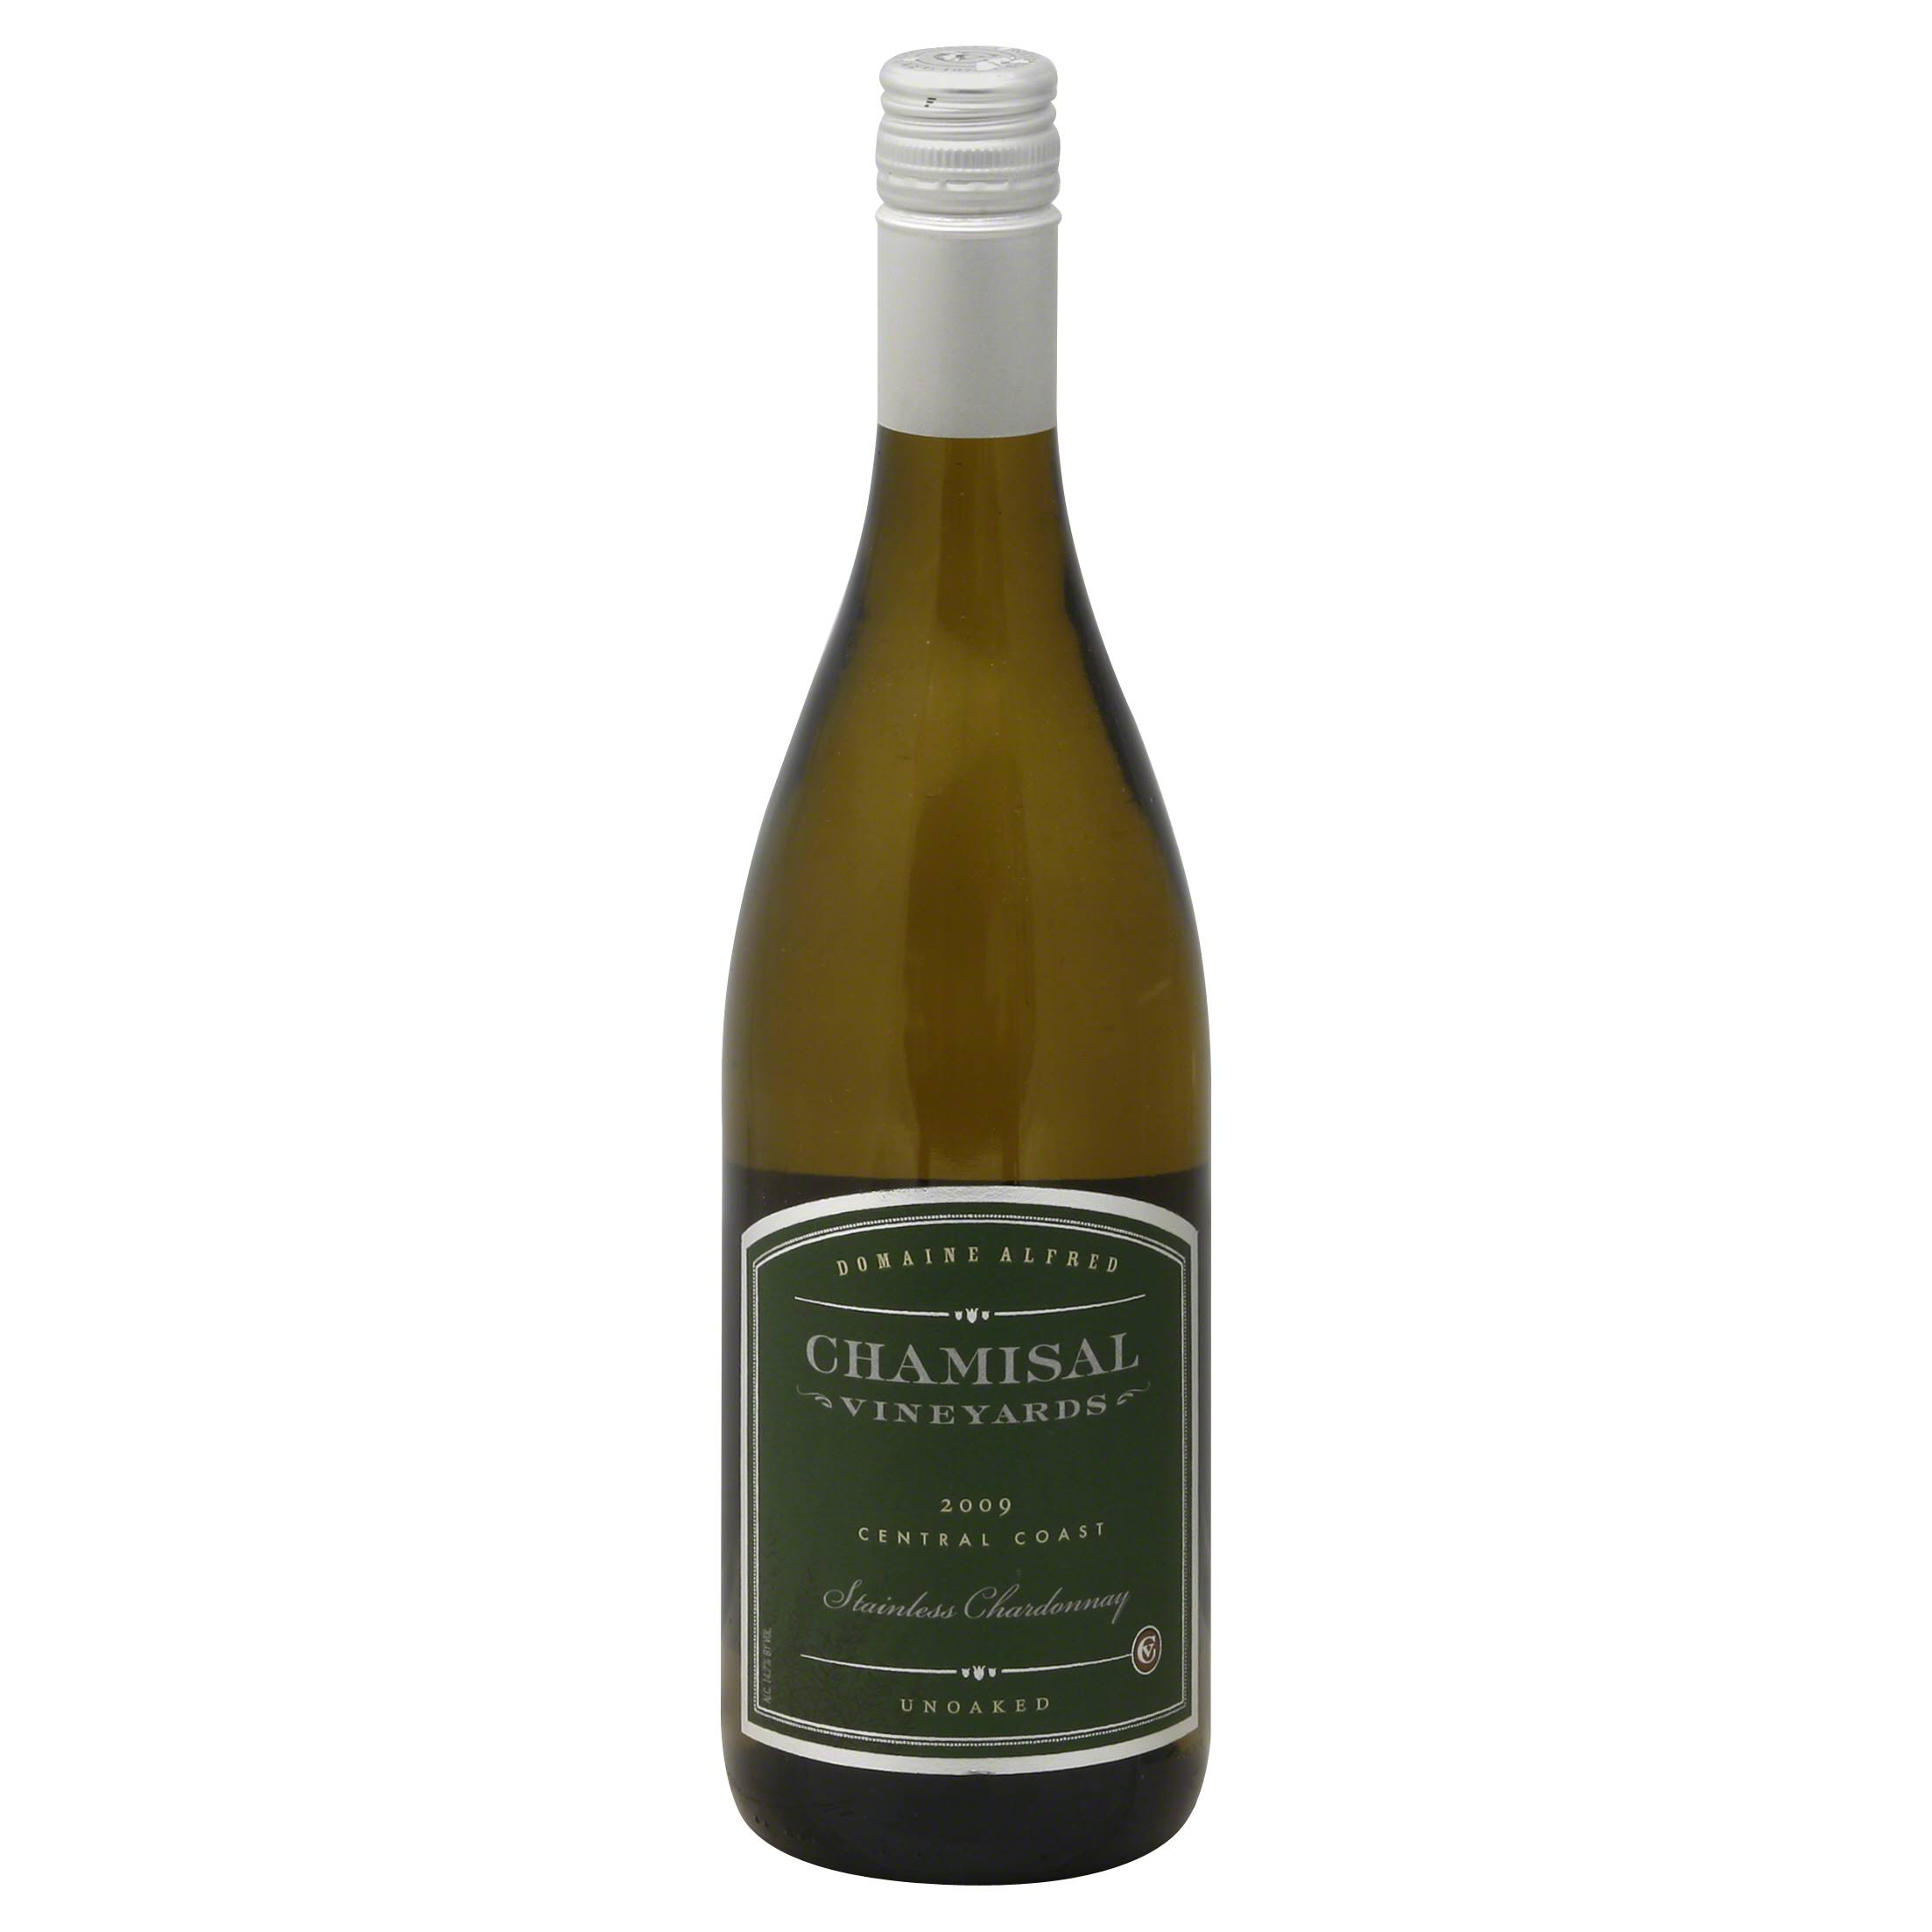 Chamisal Vineyards Chardonnay - Central Coast, California, United States